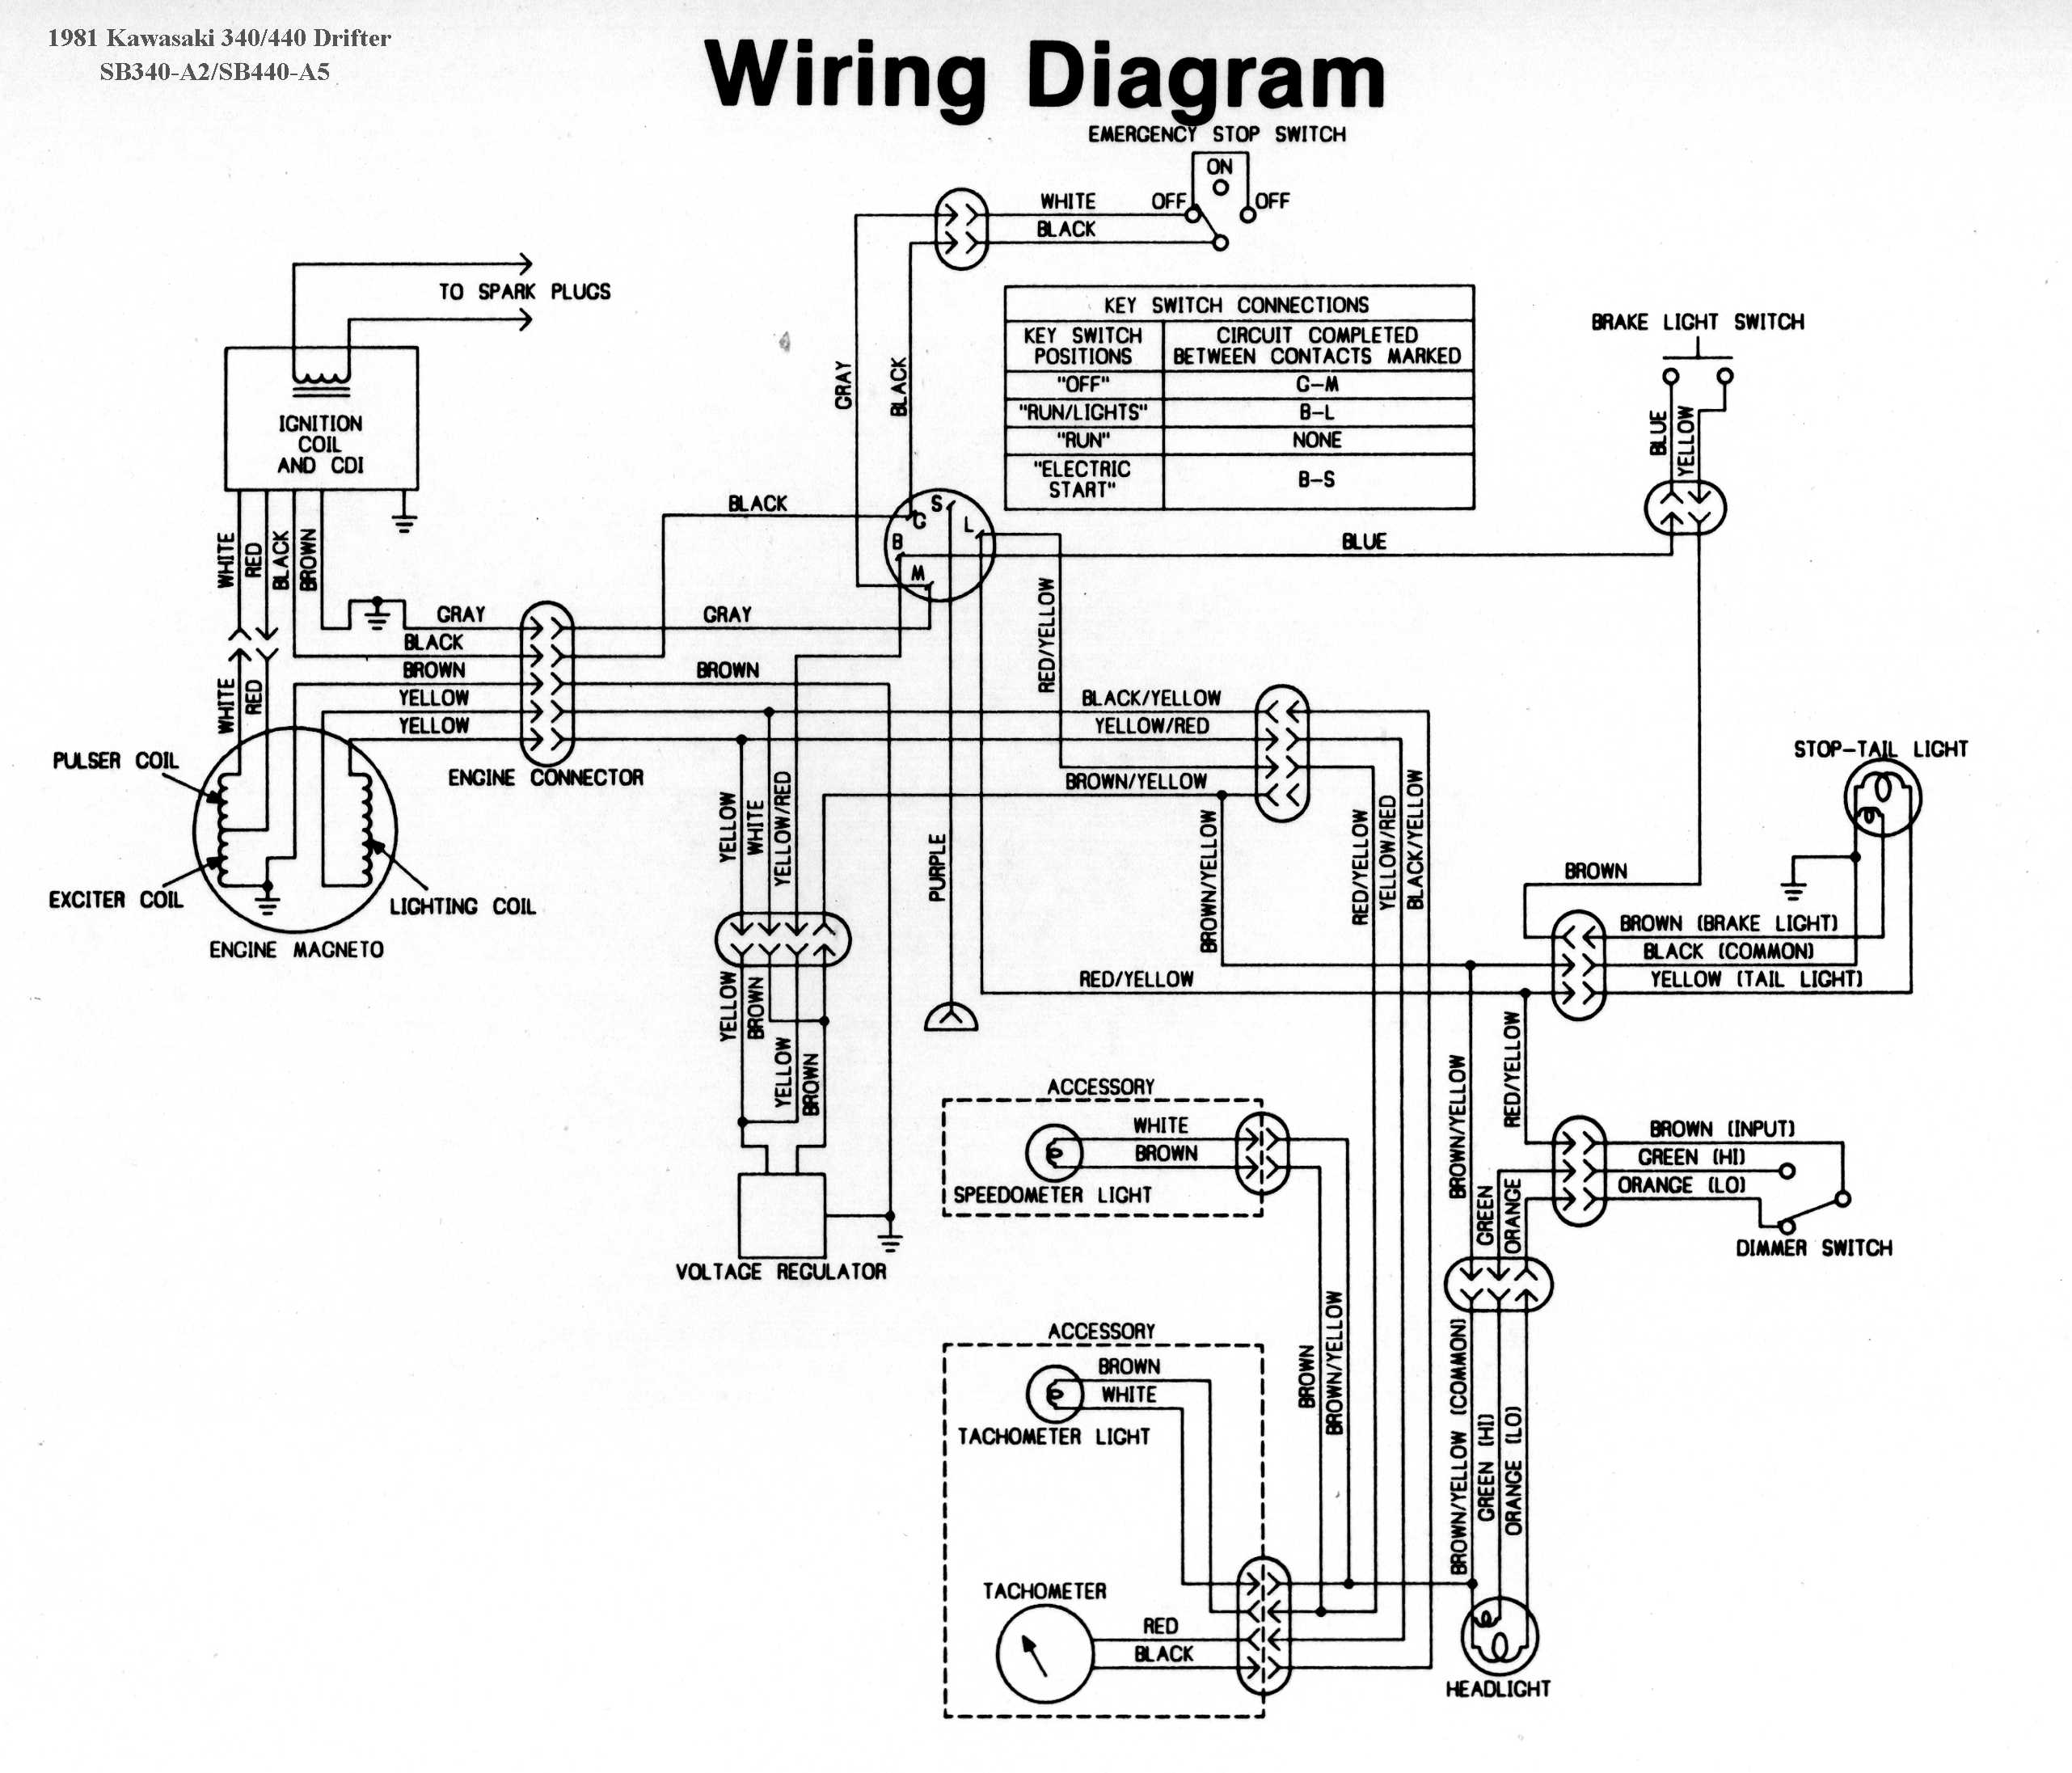 sb340a2 kawasaki 1981 kawasaki 440 ltd wiring diagram at n-0.co